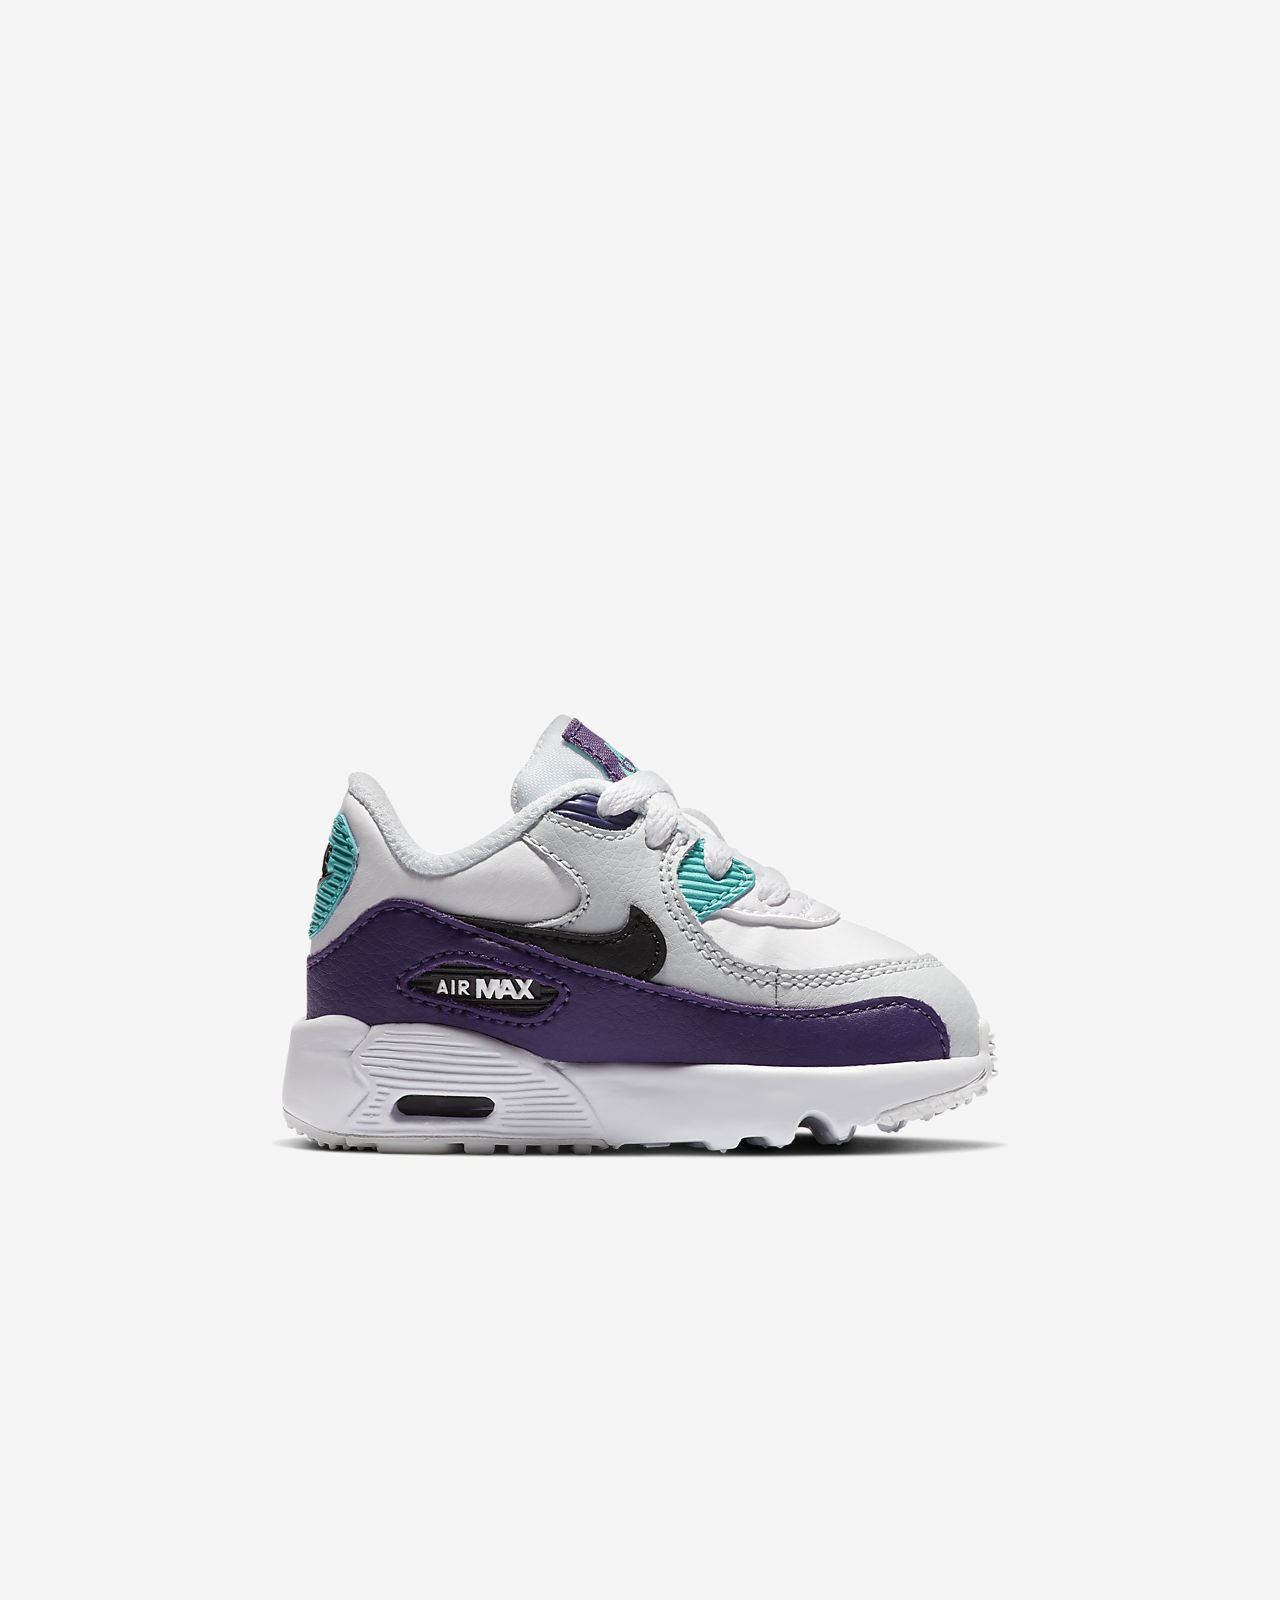 Chaussure Nike Bebe Air Max 90 Chaussures Nike Pour Homme